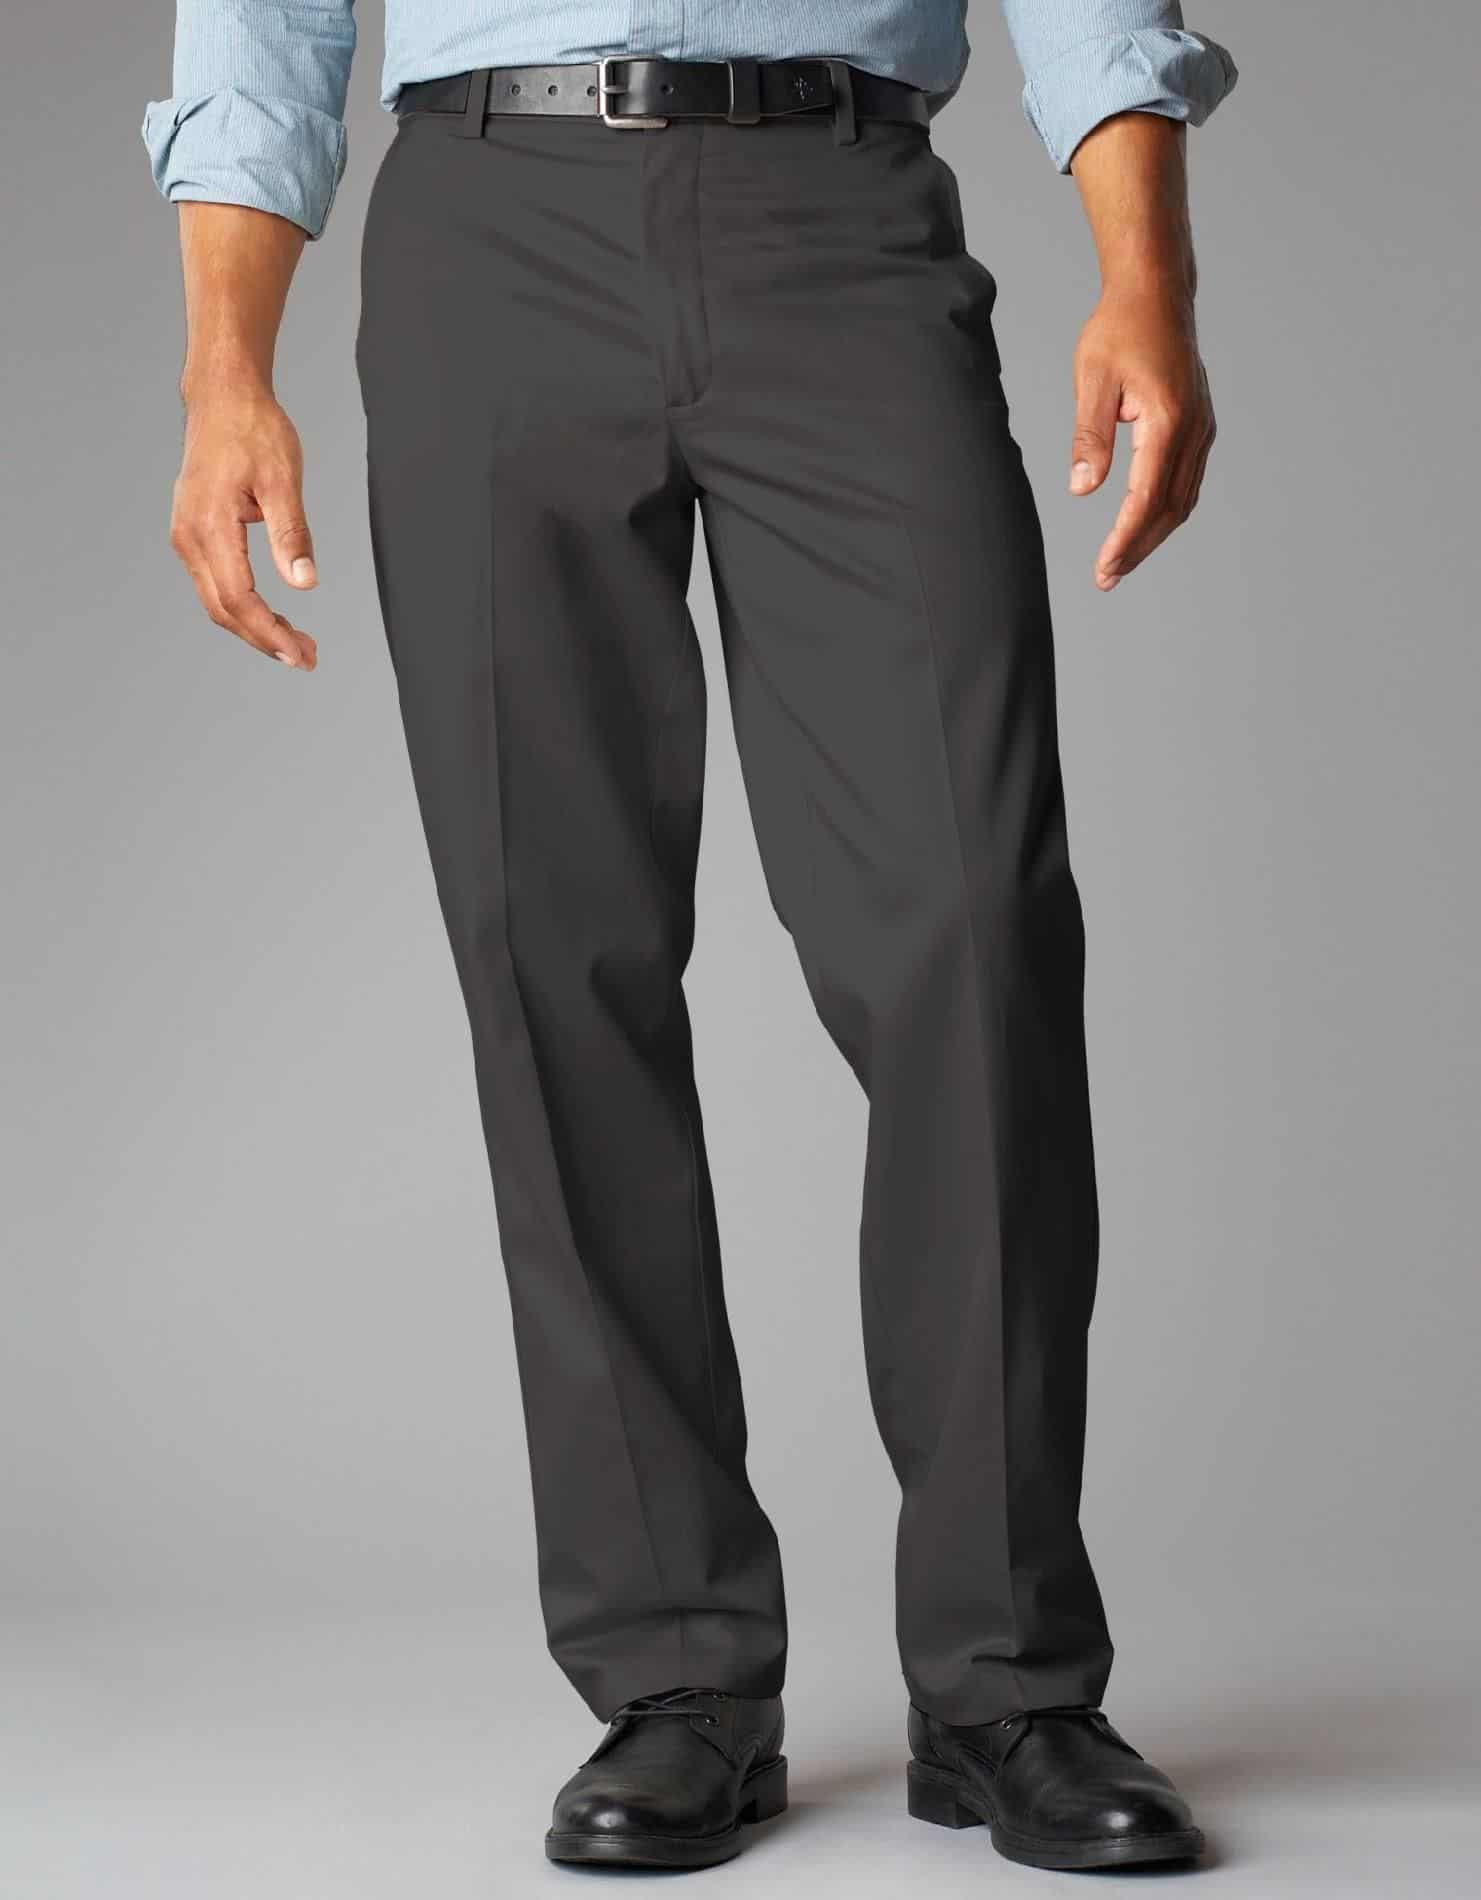 Trousers – men dress for body type